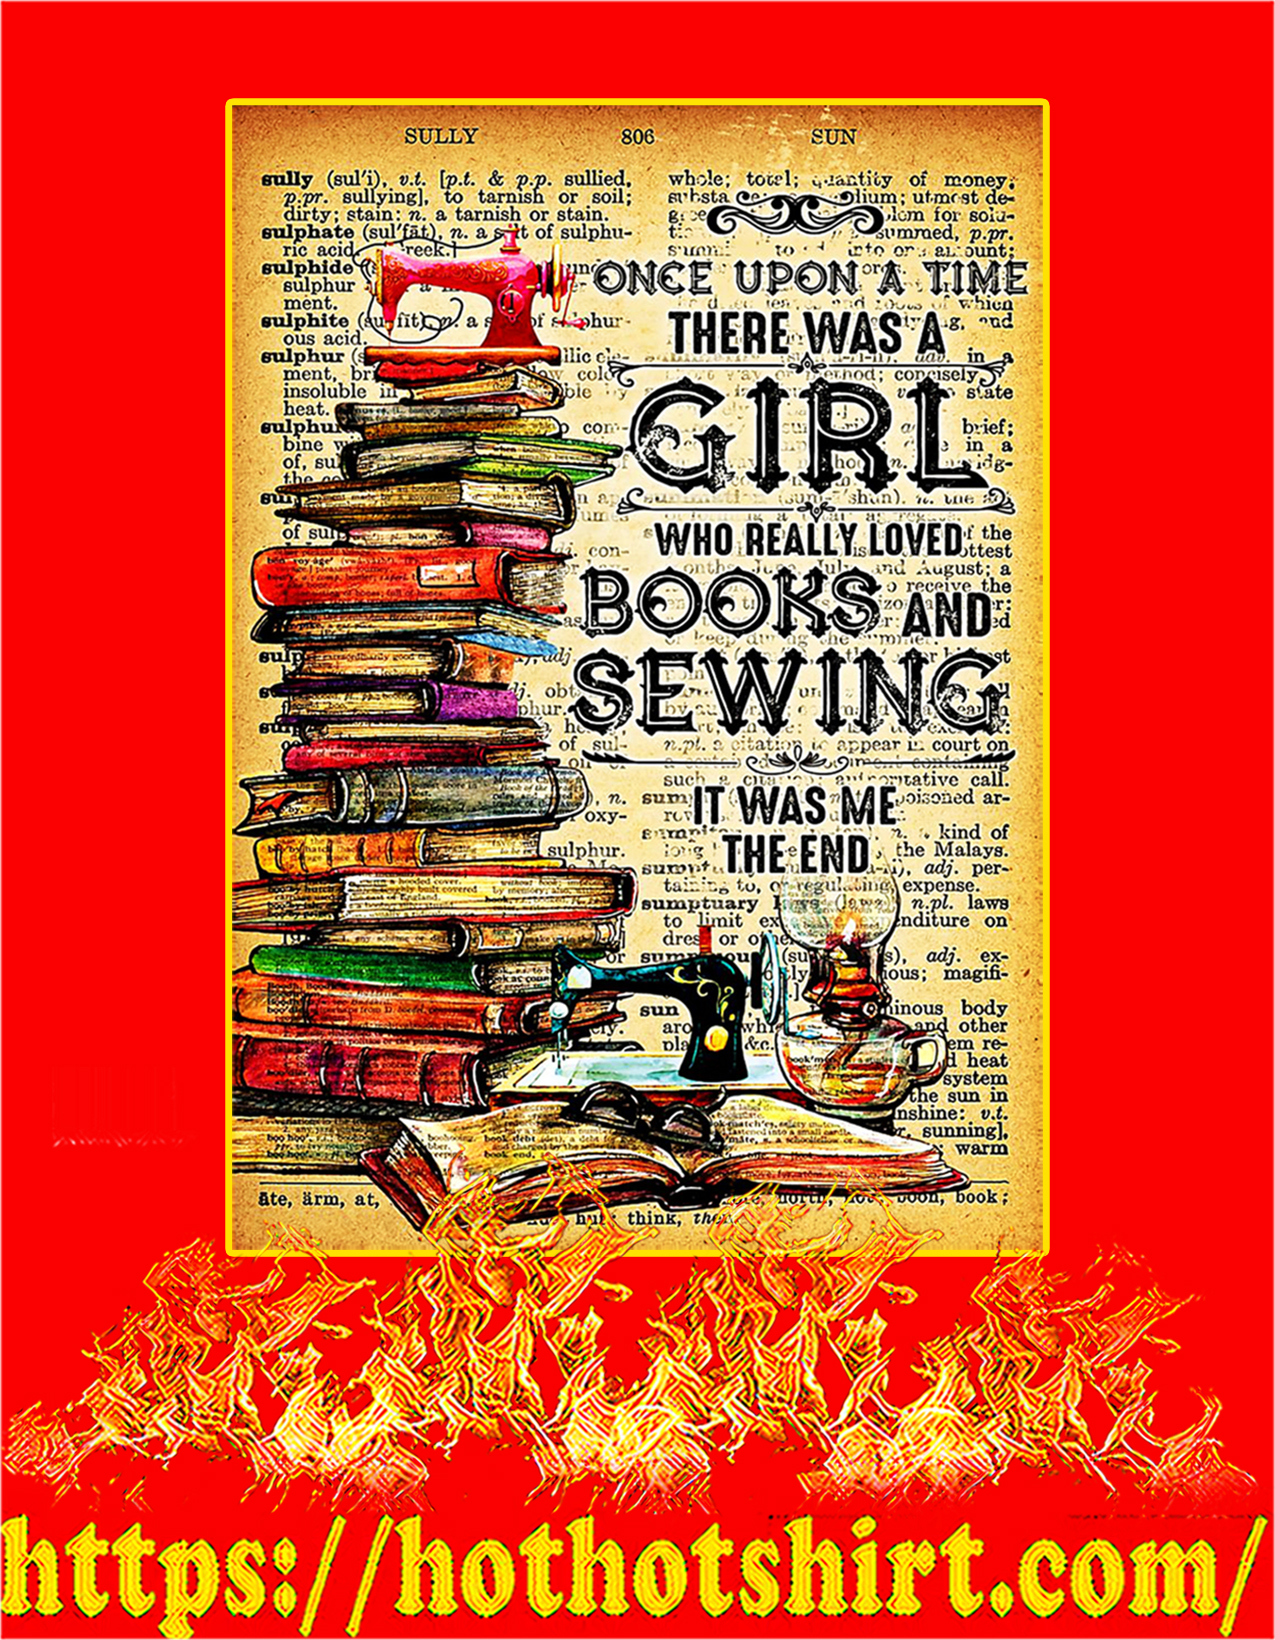 There was a Girl who really loved books and sewing poster - A2